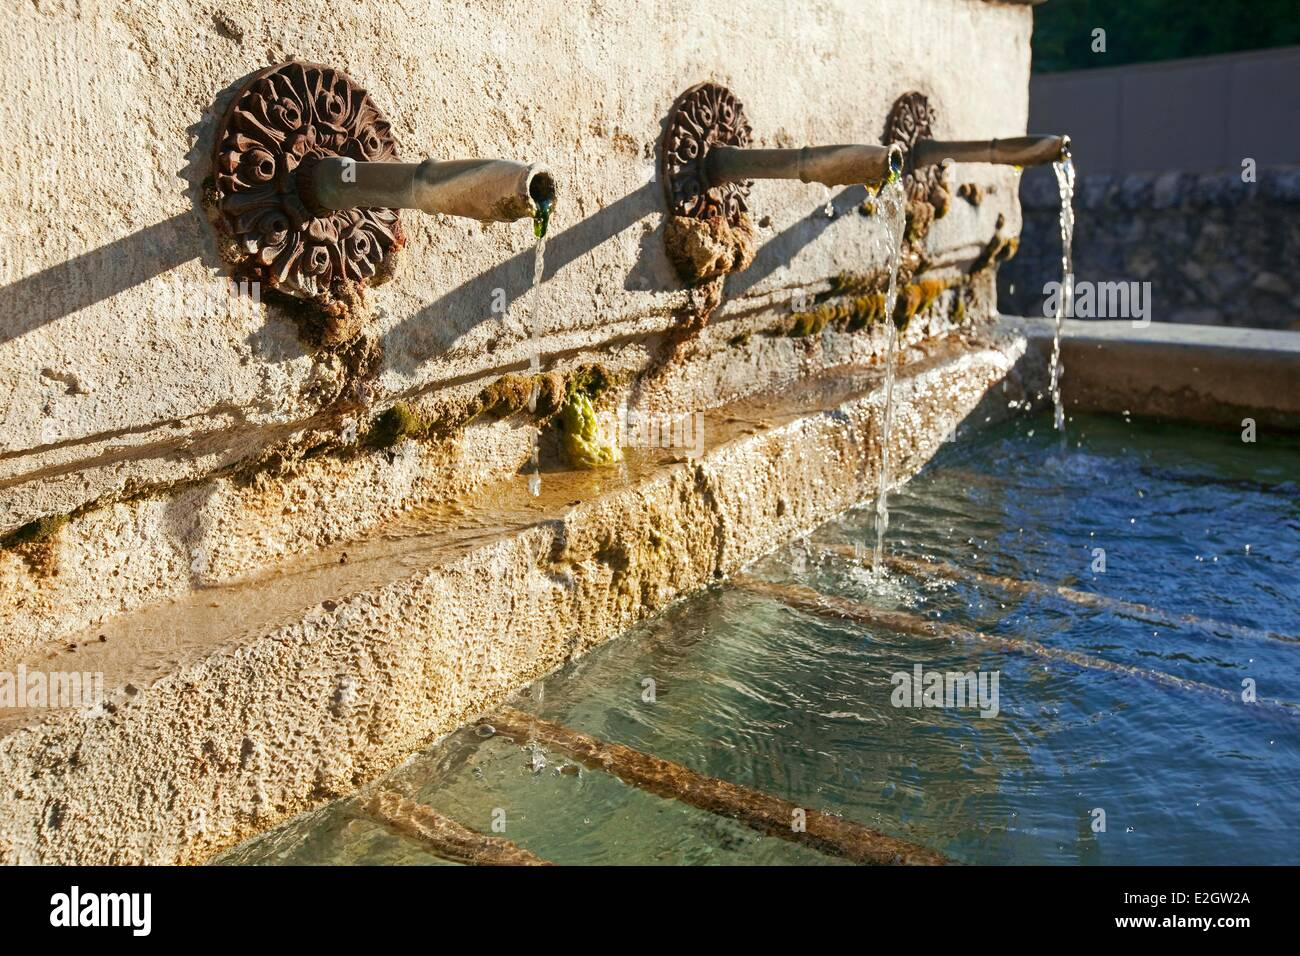 France Vaucluse Sablet rue Fortune Bernard fountain with three outputs - Stock Image